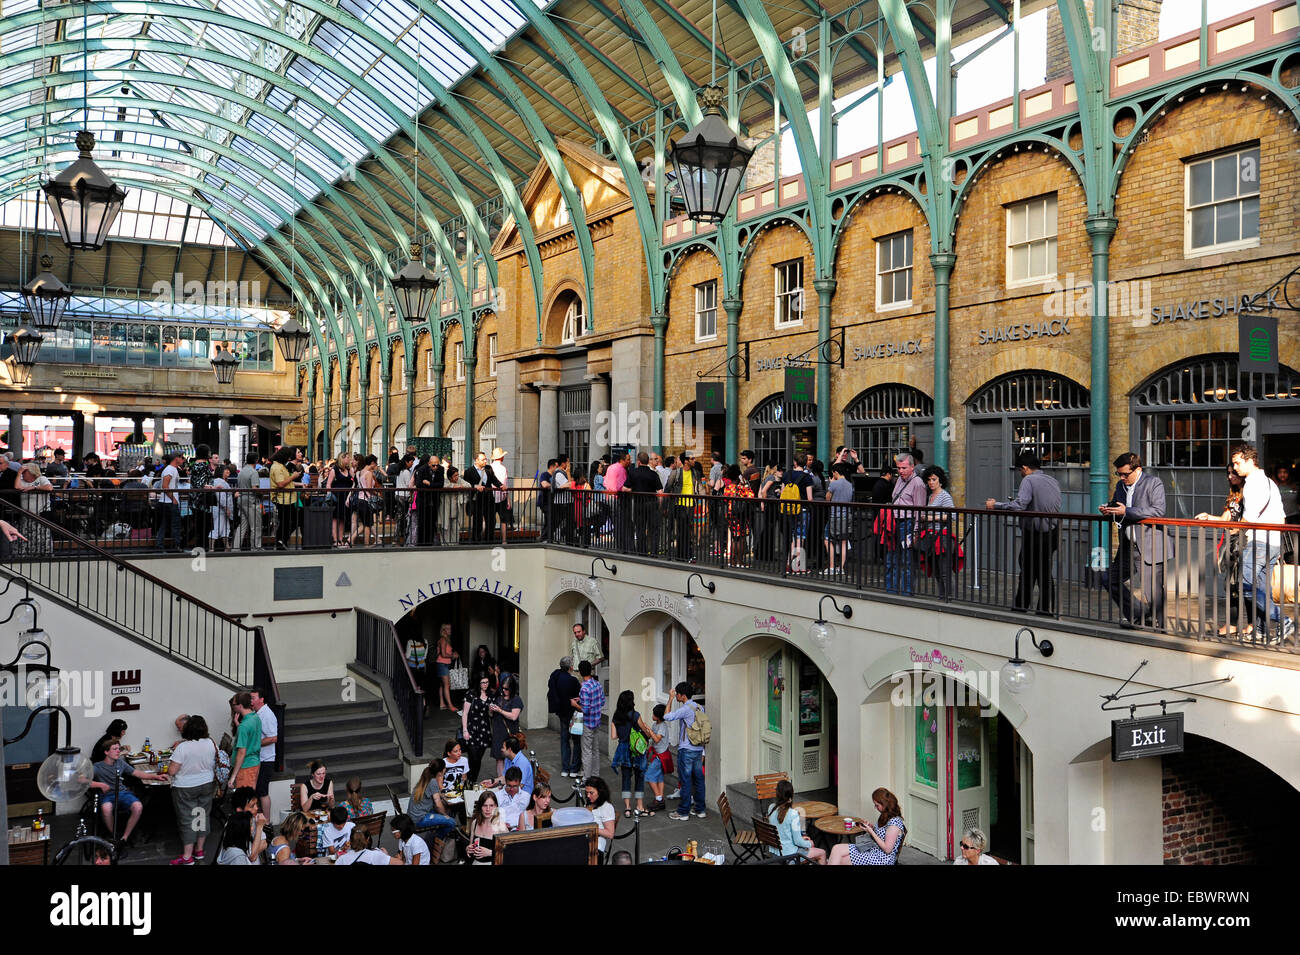 Inspiring Interior Covent Garden Market London Stock Photos  Interior  With Marvelous People Inside Covent Garden Central Market Covent Garden West End  London England With Enchanting Lee Garden Restaurant Toronto Also  Kensington Palace Gardens In Addition Garden Fire Pit Ideas And Cheap Garden Slabs For Sale As Well As London Map Covent Garden Additionally Jj Gardening From Alamycom With   Enchanting Interior Covent Garden Market London Stock Photos  Interior  With Inspiring Cheap Garden Slabs For Sale As Well As London Map Covent Garden Additionally Jj Gardening And Marvelous People Inside Covent Garden Central Market Covent Garden West End  London England Via Alamycom